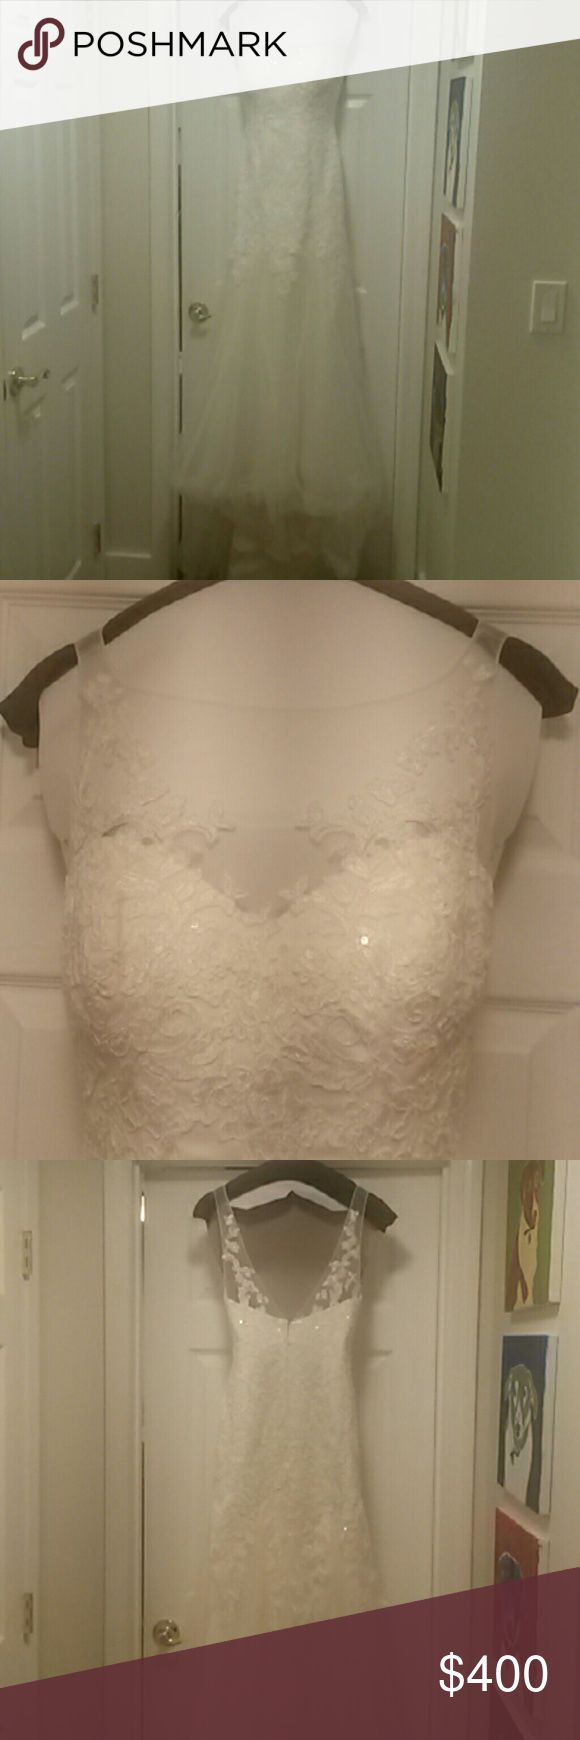 """David's Bridal Illusion wedding dress size 4/6 Style # MK3718 Purchased as a size 6 and took it in at the tummy area. My ribcage is a 6, but my waistline is a 4. I'm normally a David's Bridal bridesmaid dress size 4...In heels I was  5' 8"""" and the dress still drapes the ground. I also had a bustle installed, hook & eye system. Professional cleaned. Will ship in it's dress bag. Smoke free home. Can also include floor length veil. For sale cheaper on preownedweddingdresses.com Listing ID…"""